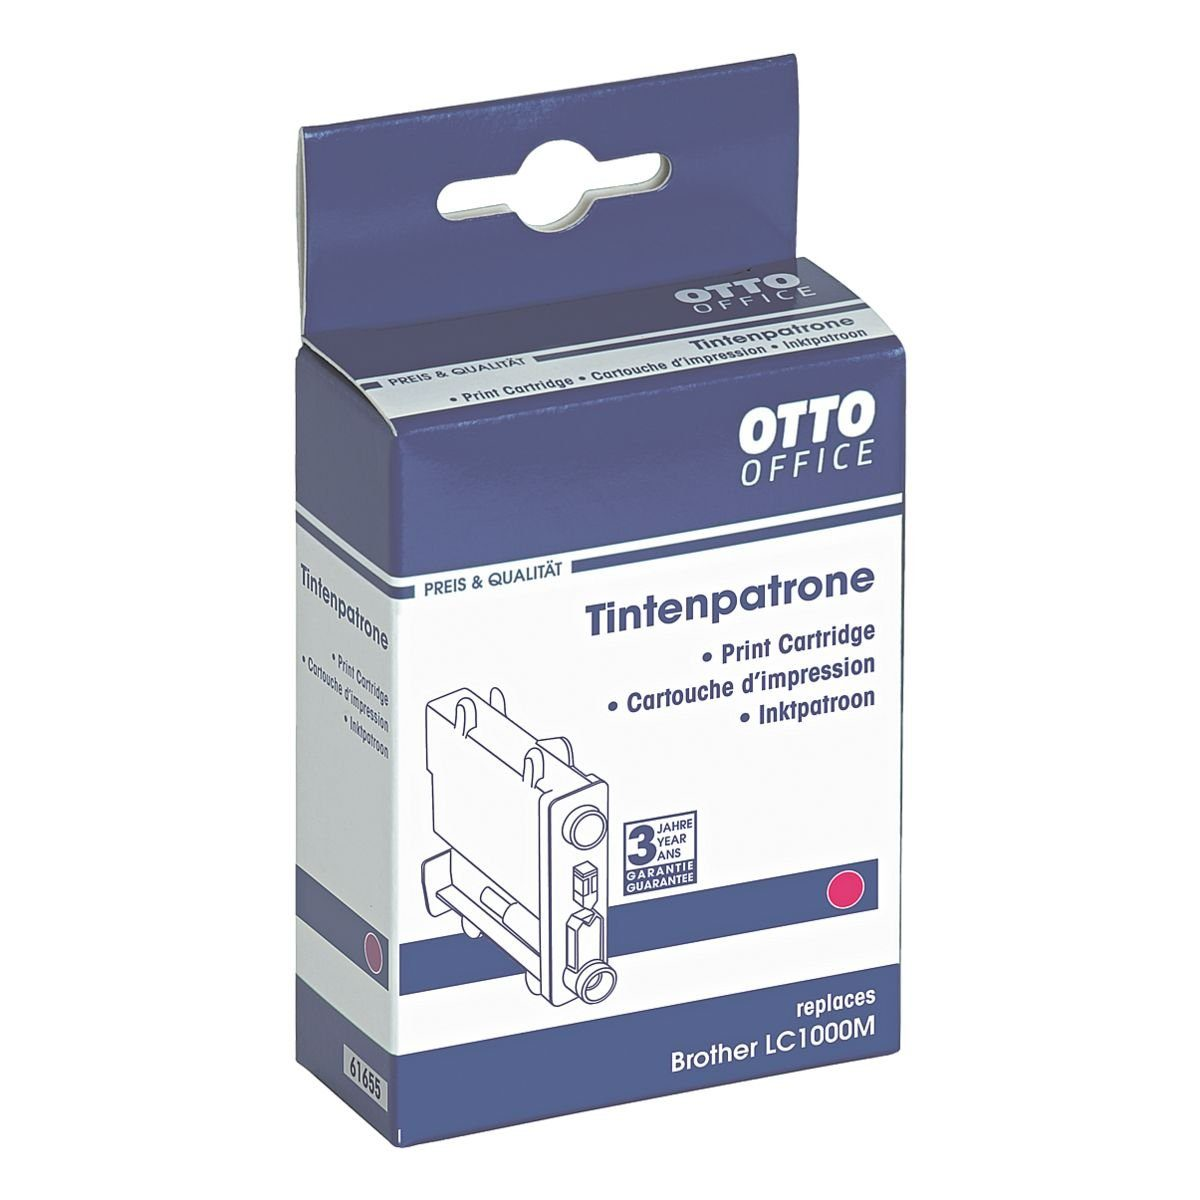 OTTO Office Standard Tintenpatrone ersetzt Brother »LC1000M«